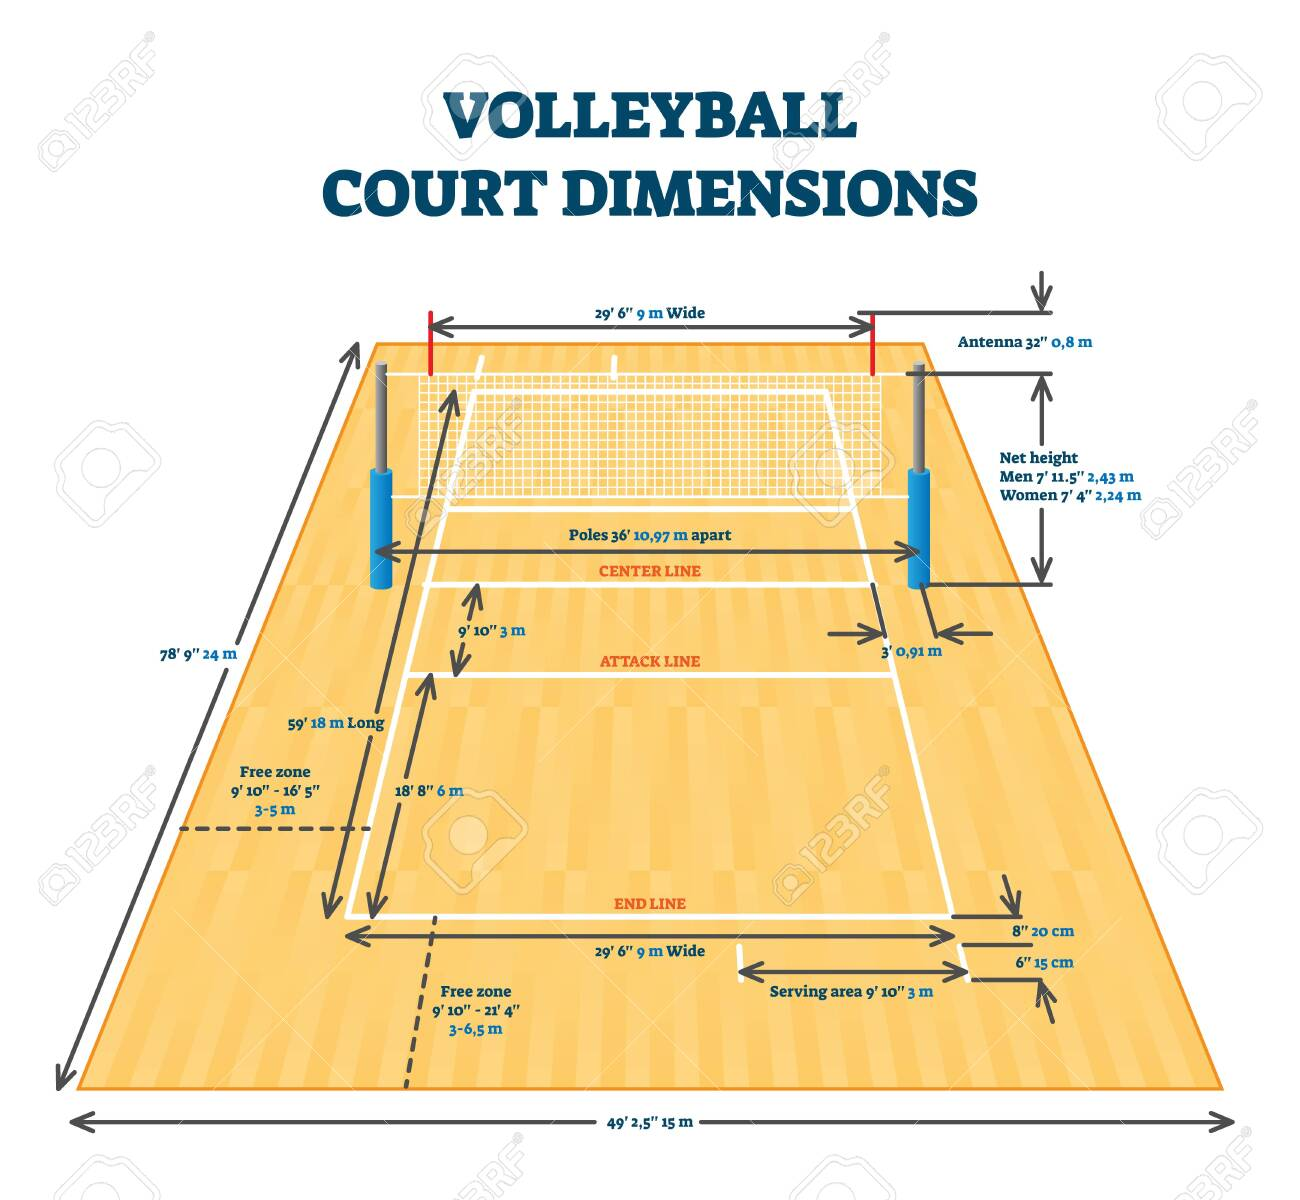 Volleyball Court Dimensions Size Guide Vector Illustration Layout Royalty Free Cliparts Vectors And Stock Illustration Image 139902374